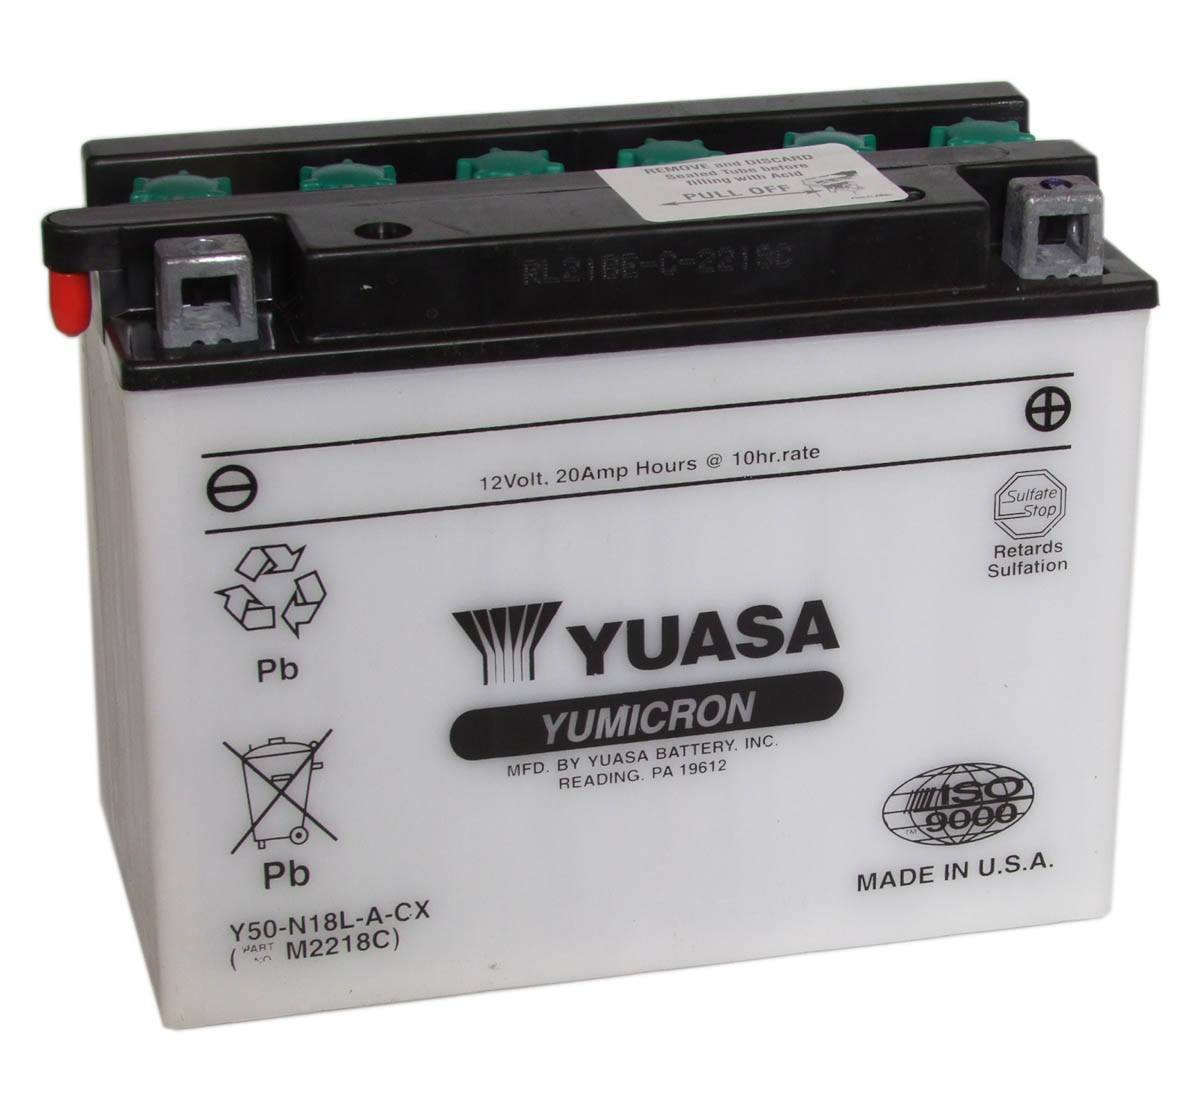 Y50-N18L-A-CX Yuasa Motorcycle Battery